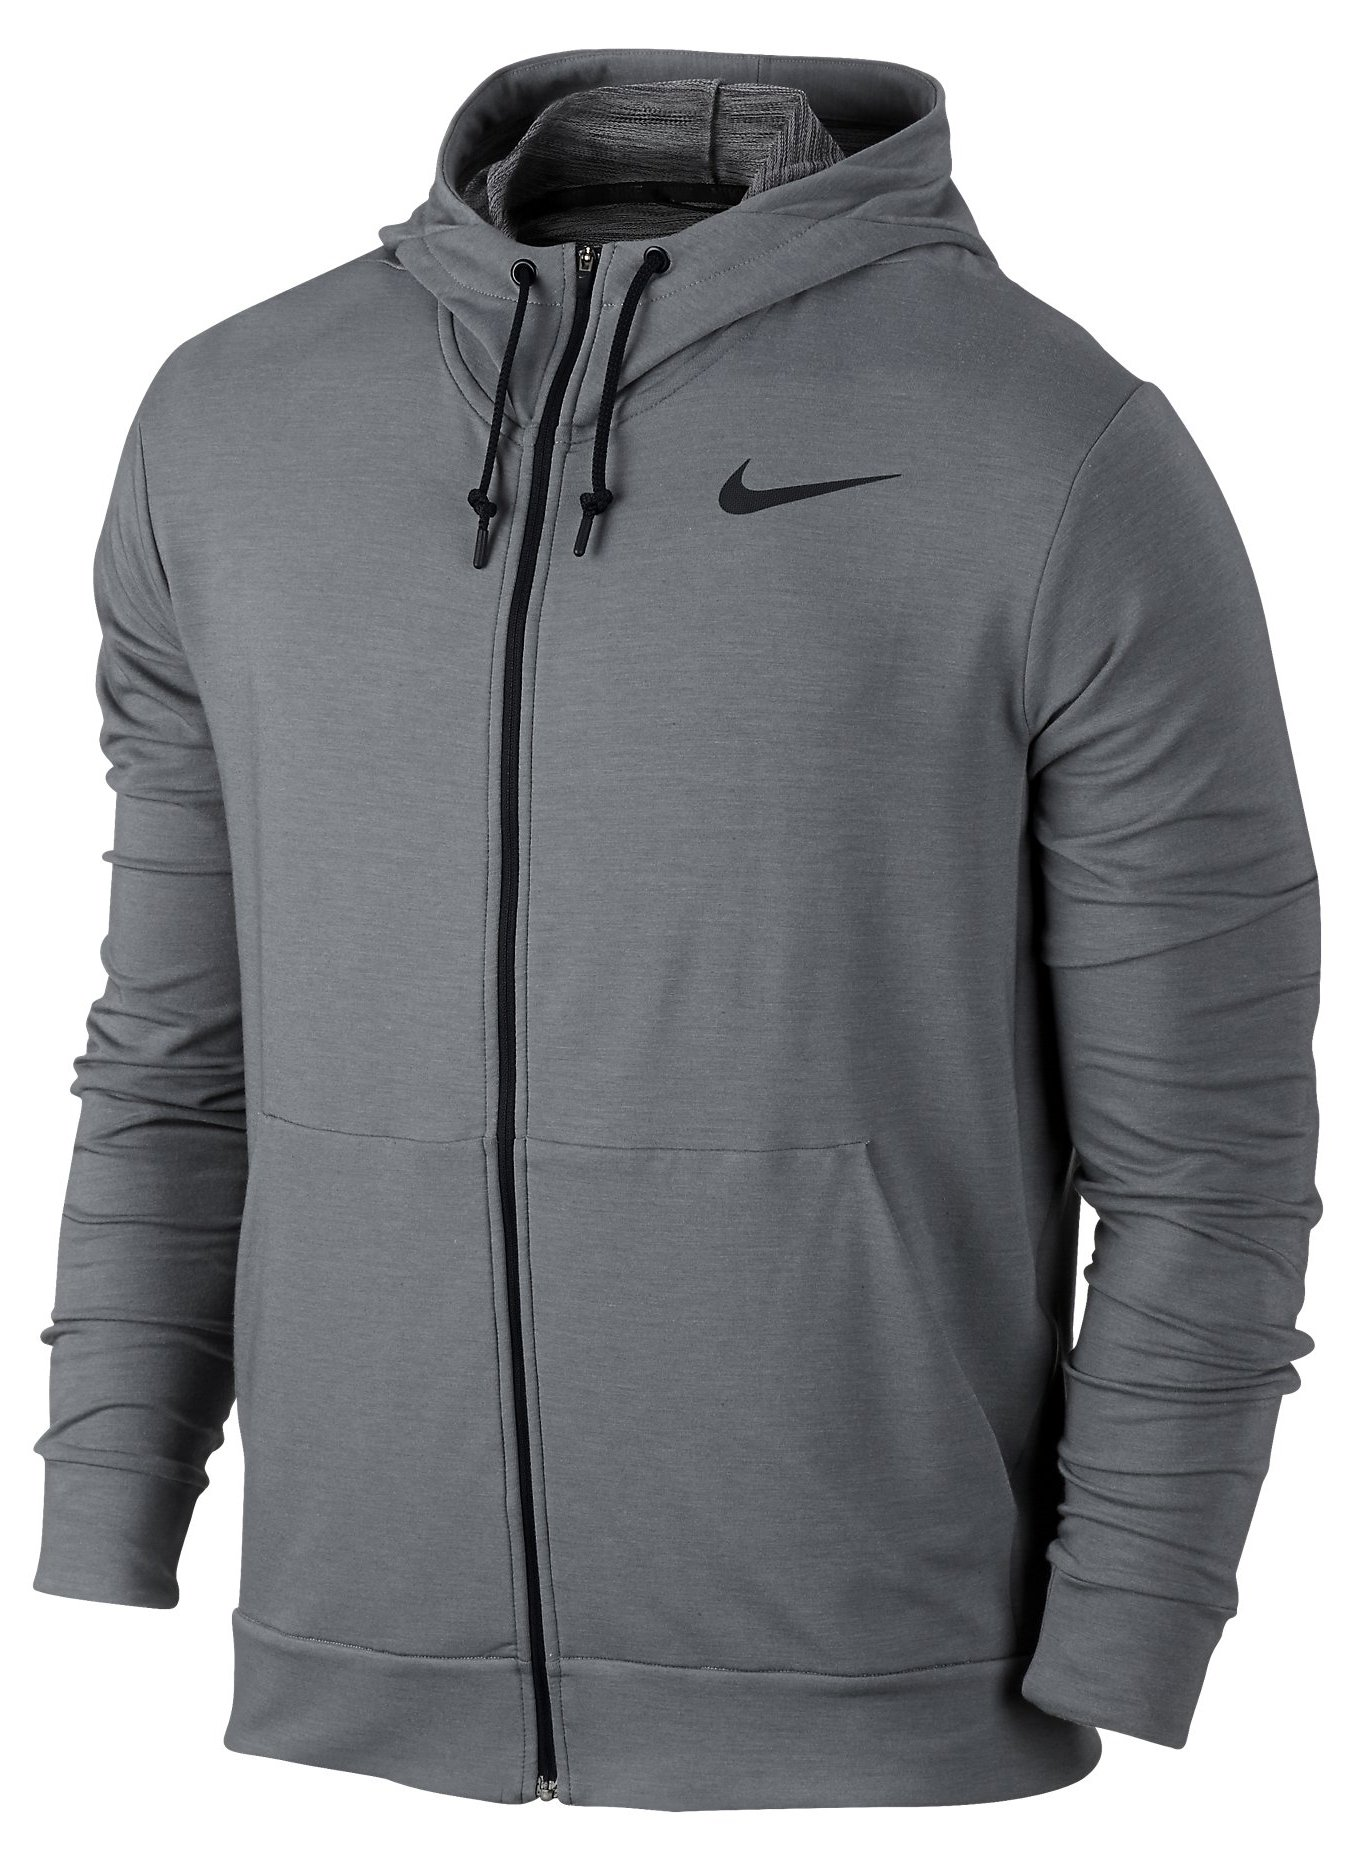 Hooded Sweatshirt Nike DRI-FIT TRAINING FLEECE FZ HDY